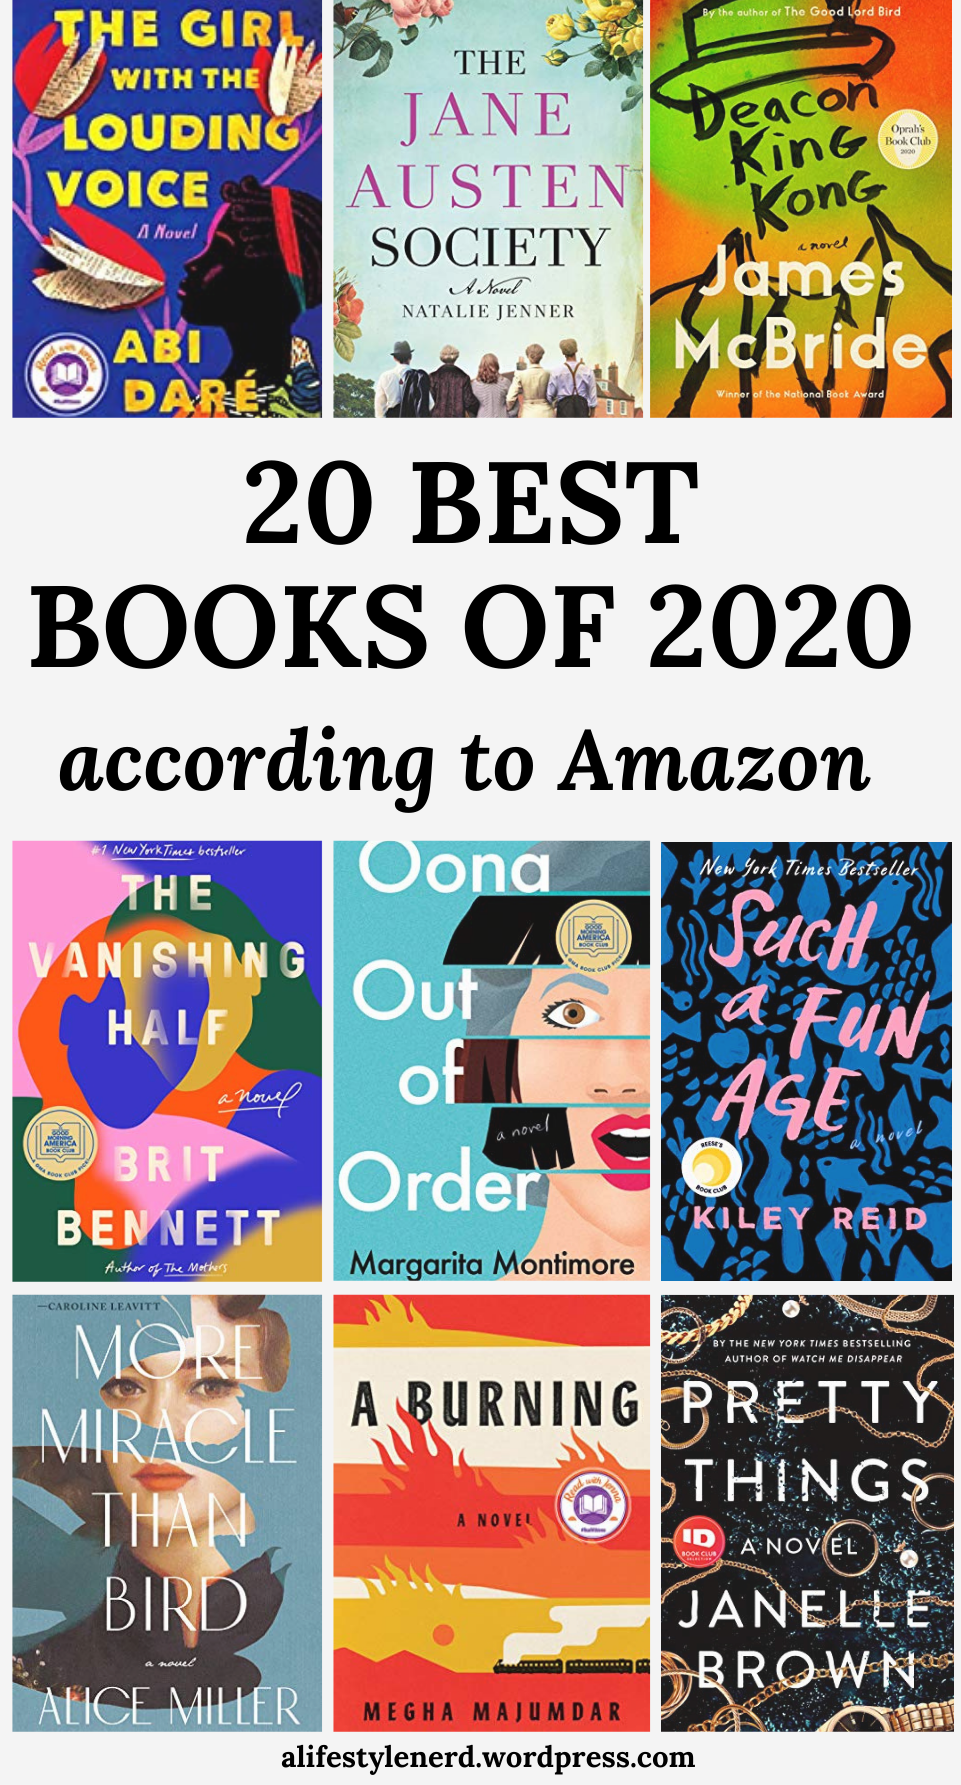 20 Best Books of 2020 to Read According to Amazon